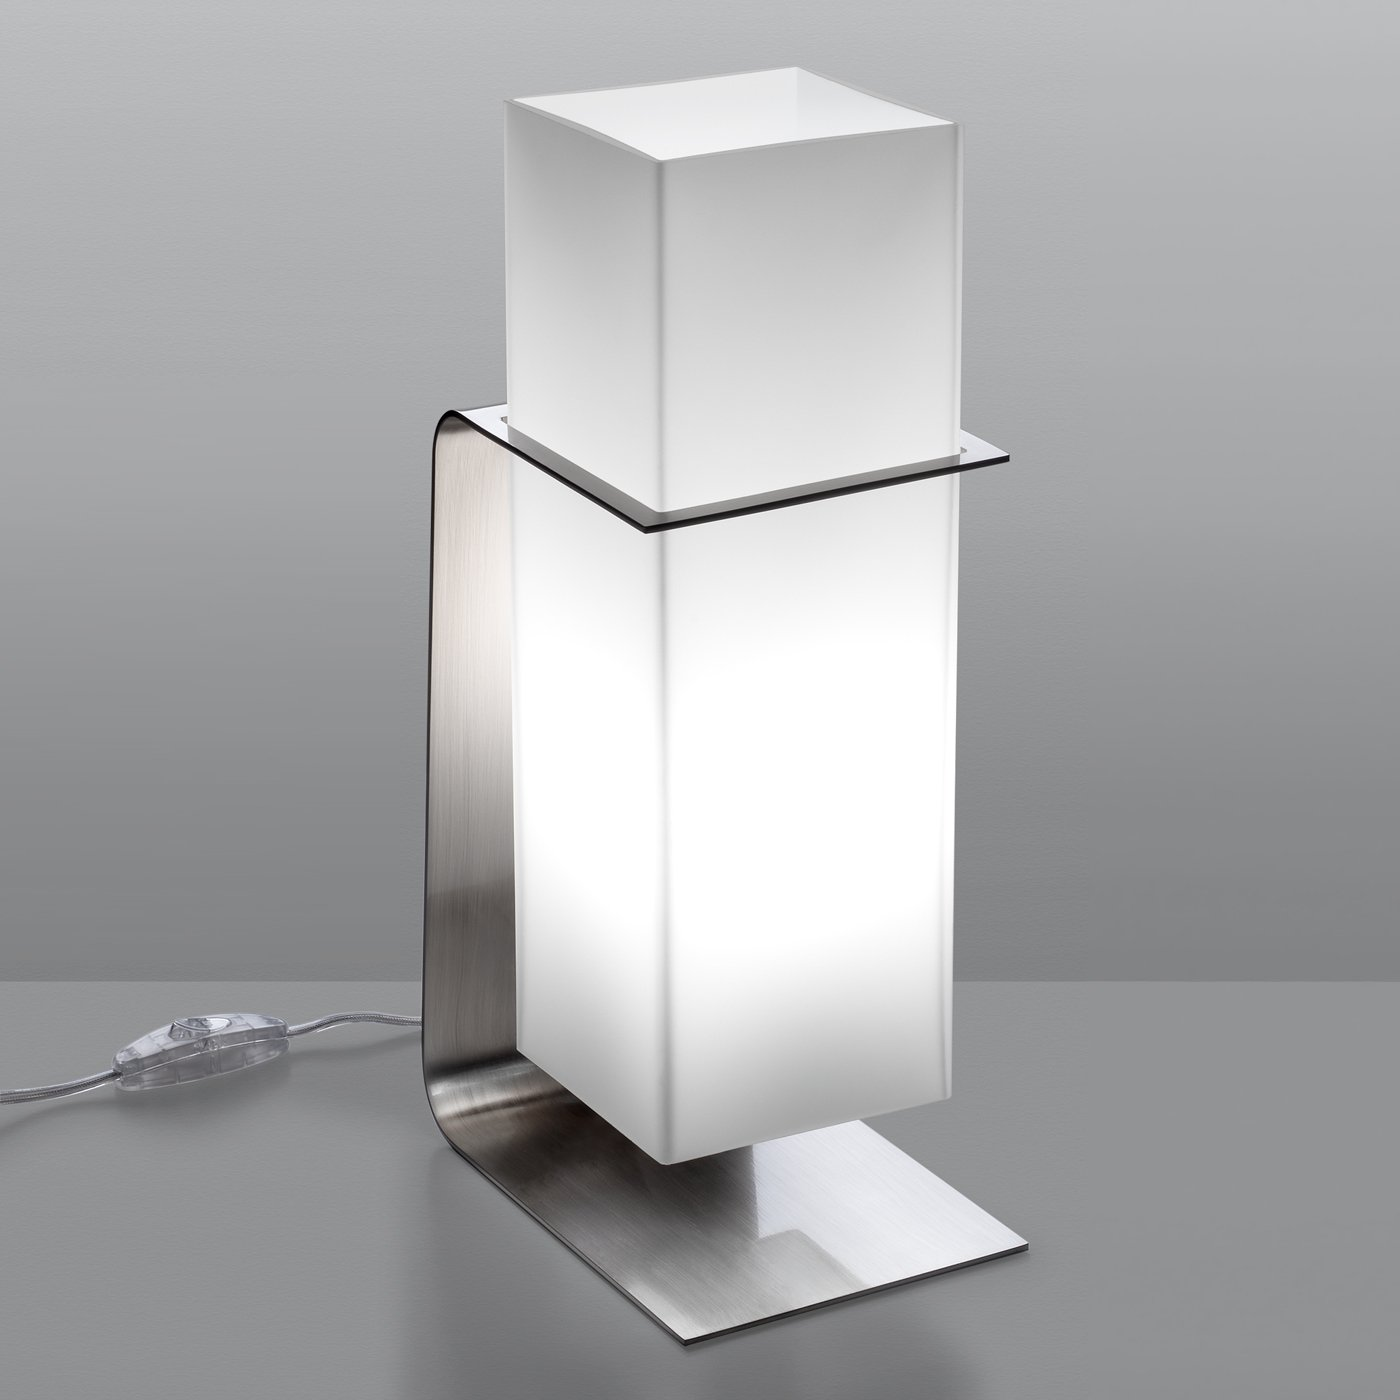 Modern Design Table Lamp photo - 6